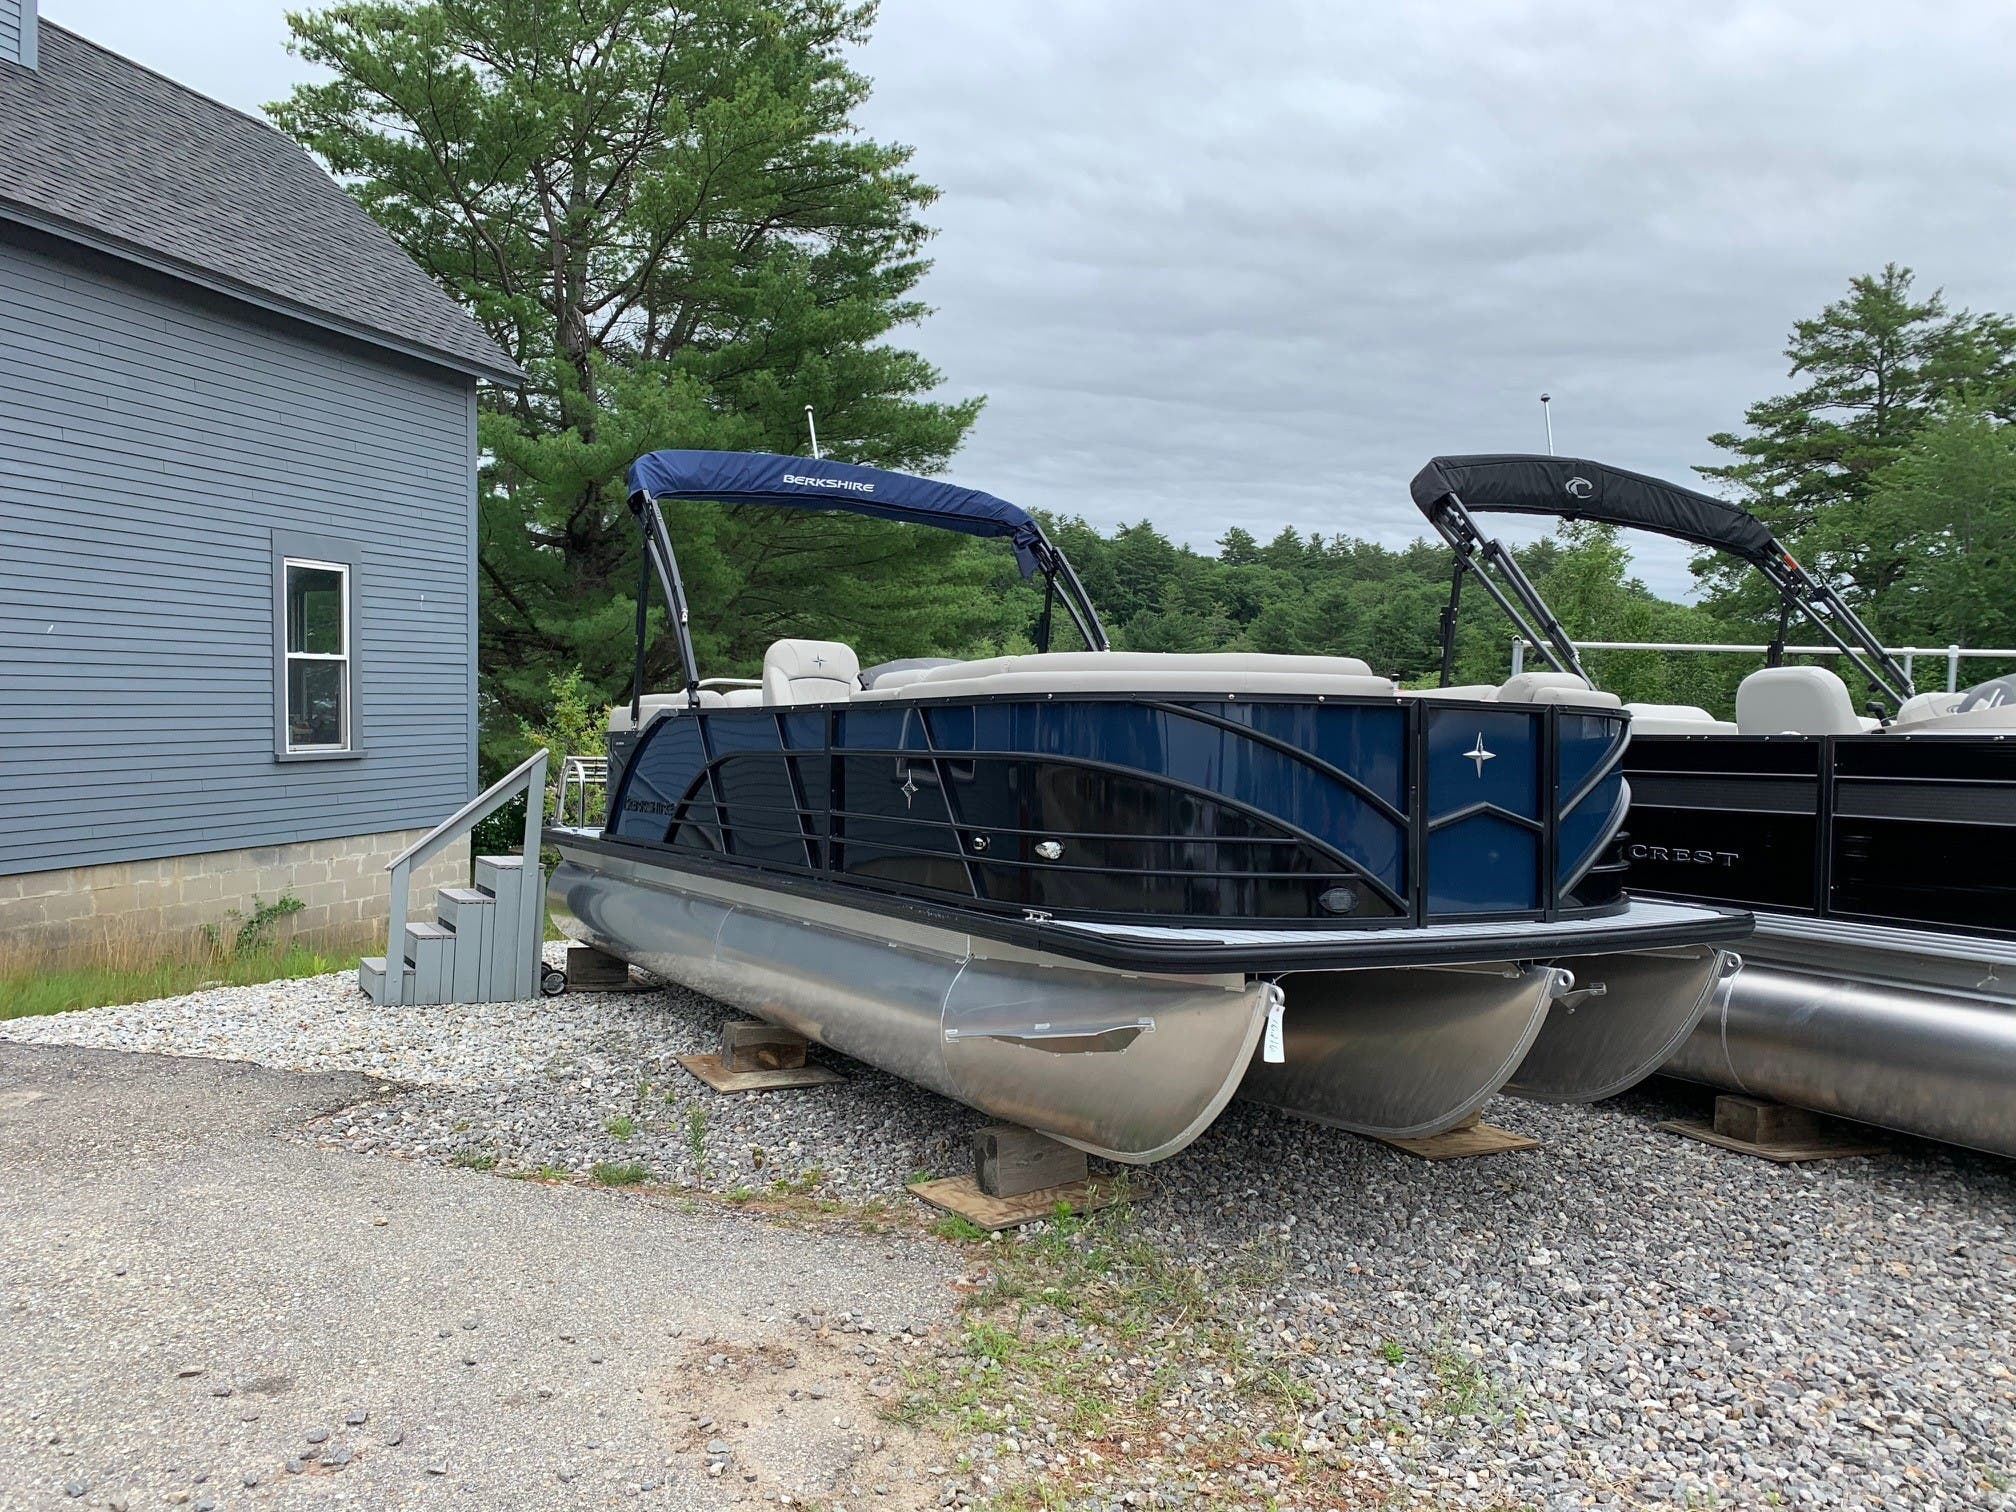 2020 Berkshire Pontoons boat for sale, model of the boat is 23rfx Sts & Image # 4 of 11